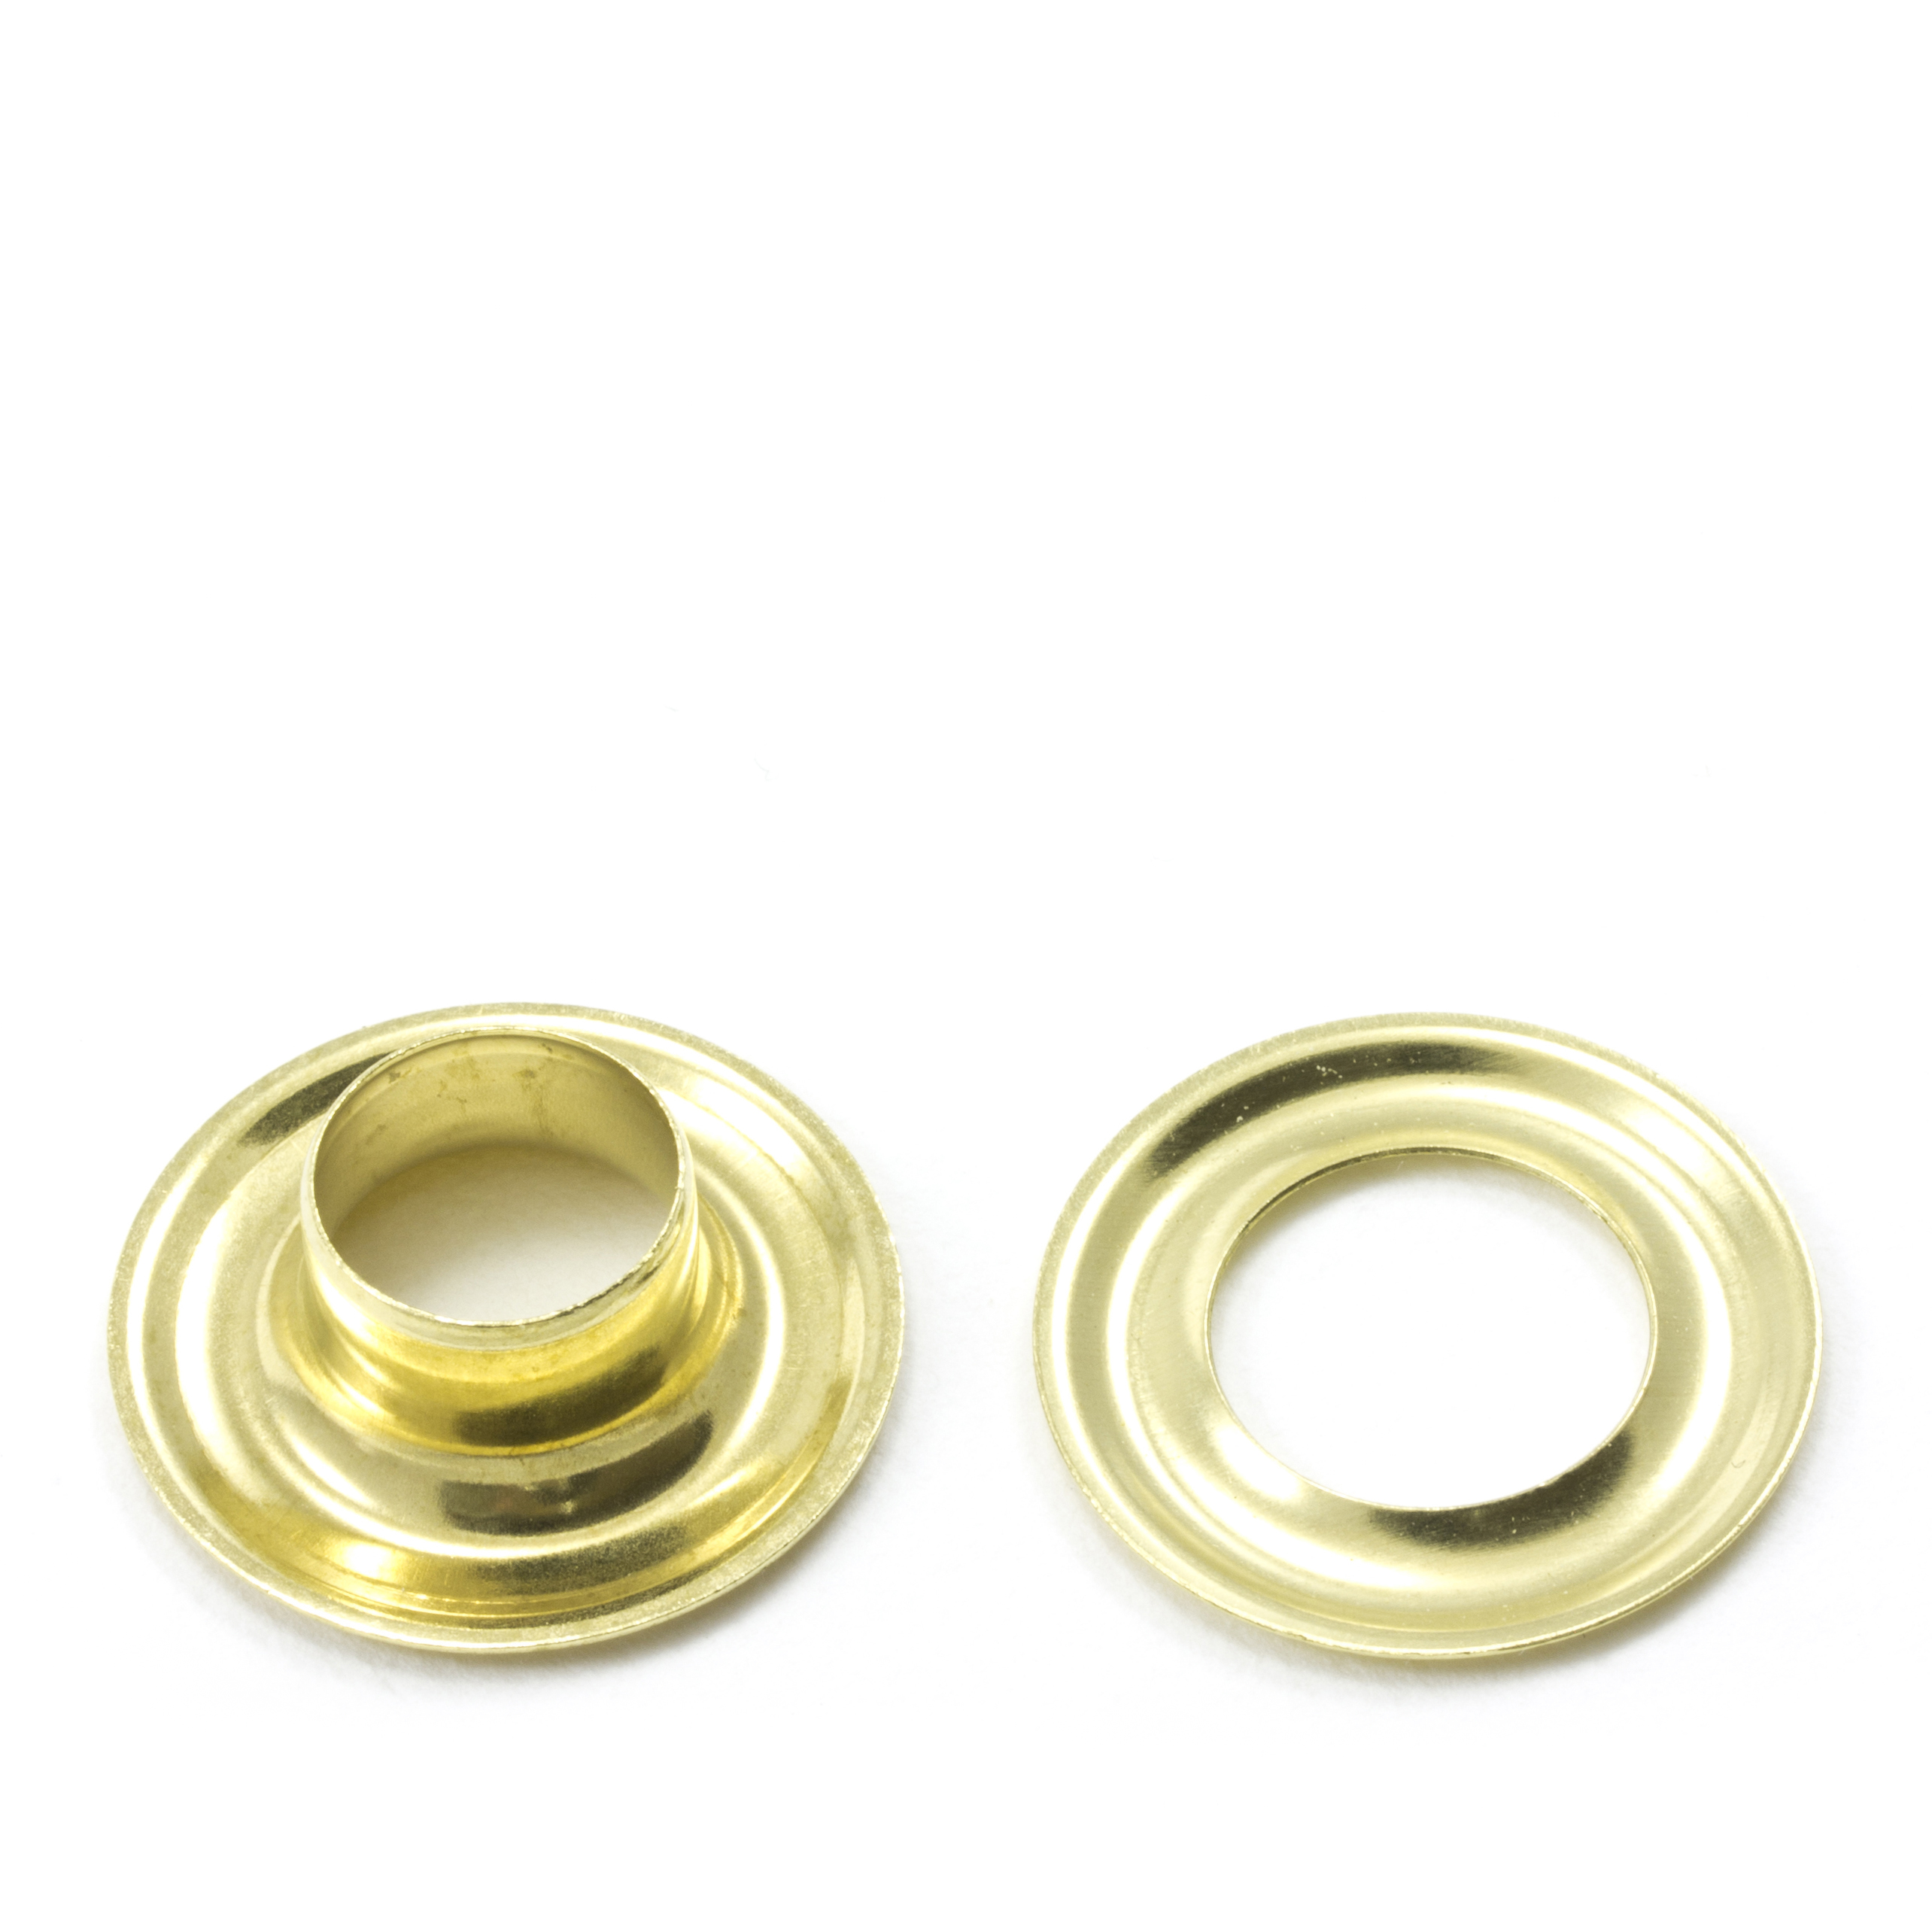 Grommet with Plain Washer #3 Brass 7/16